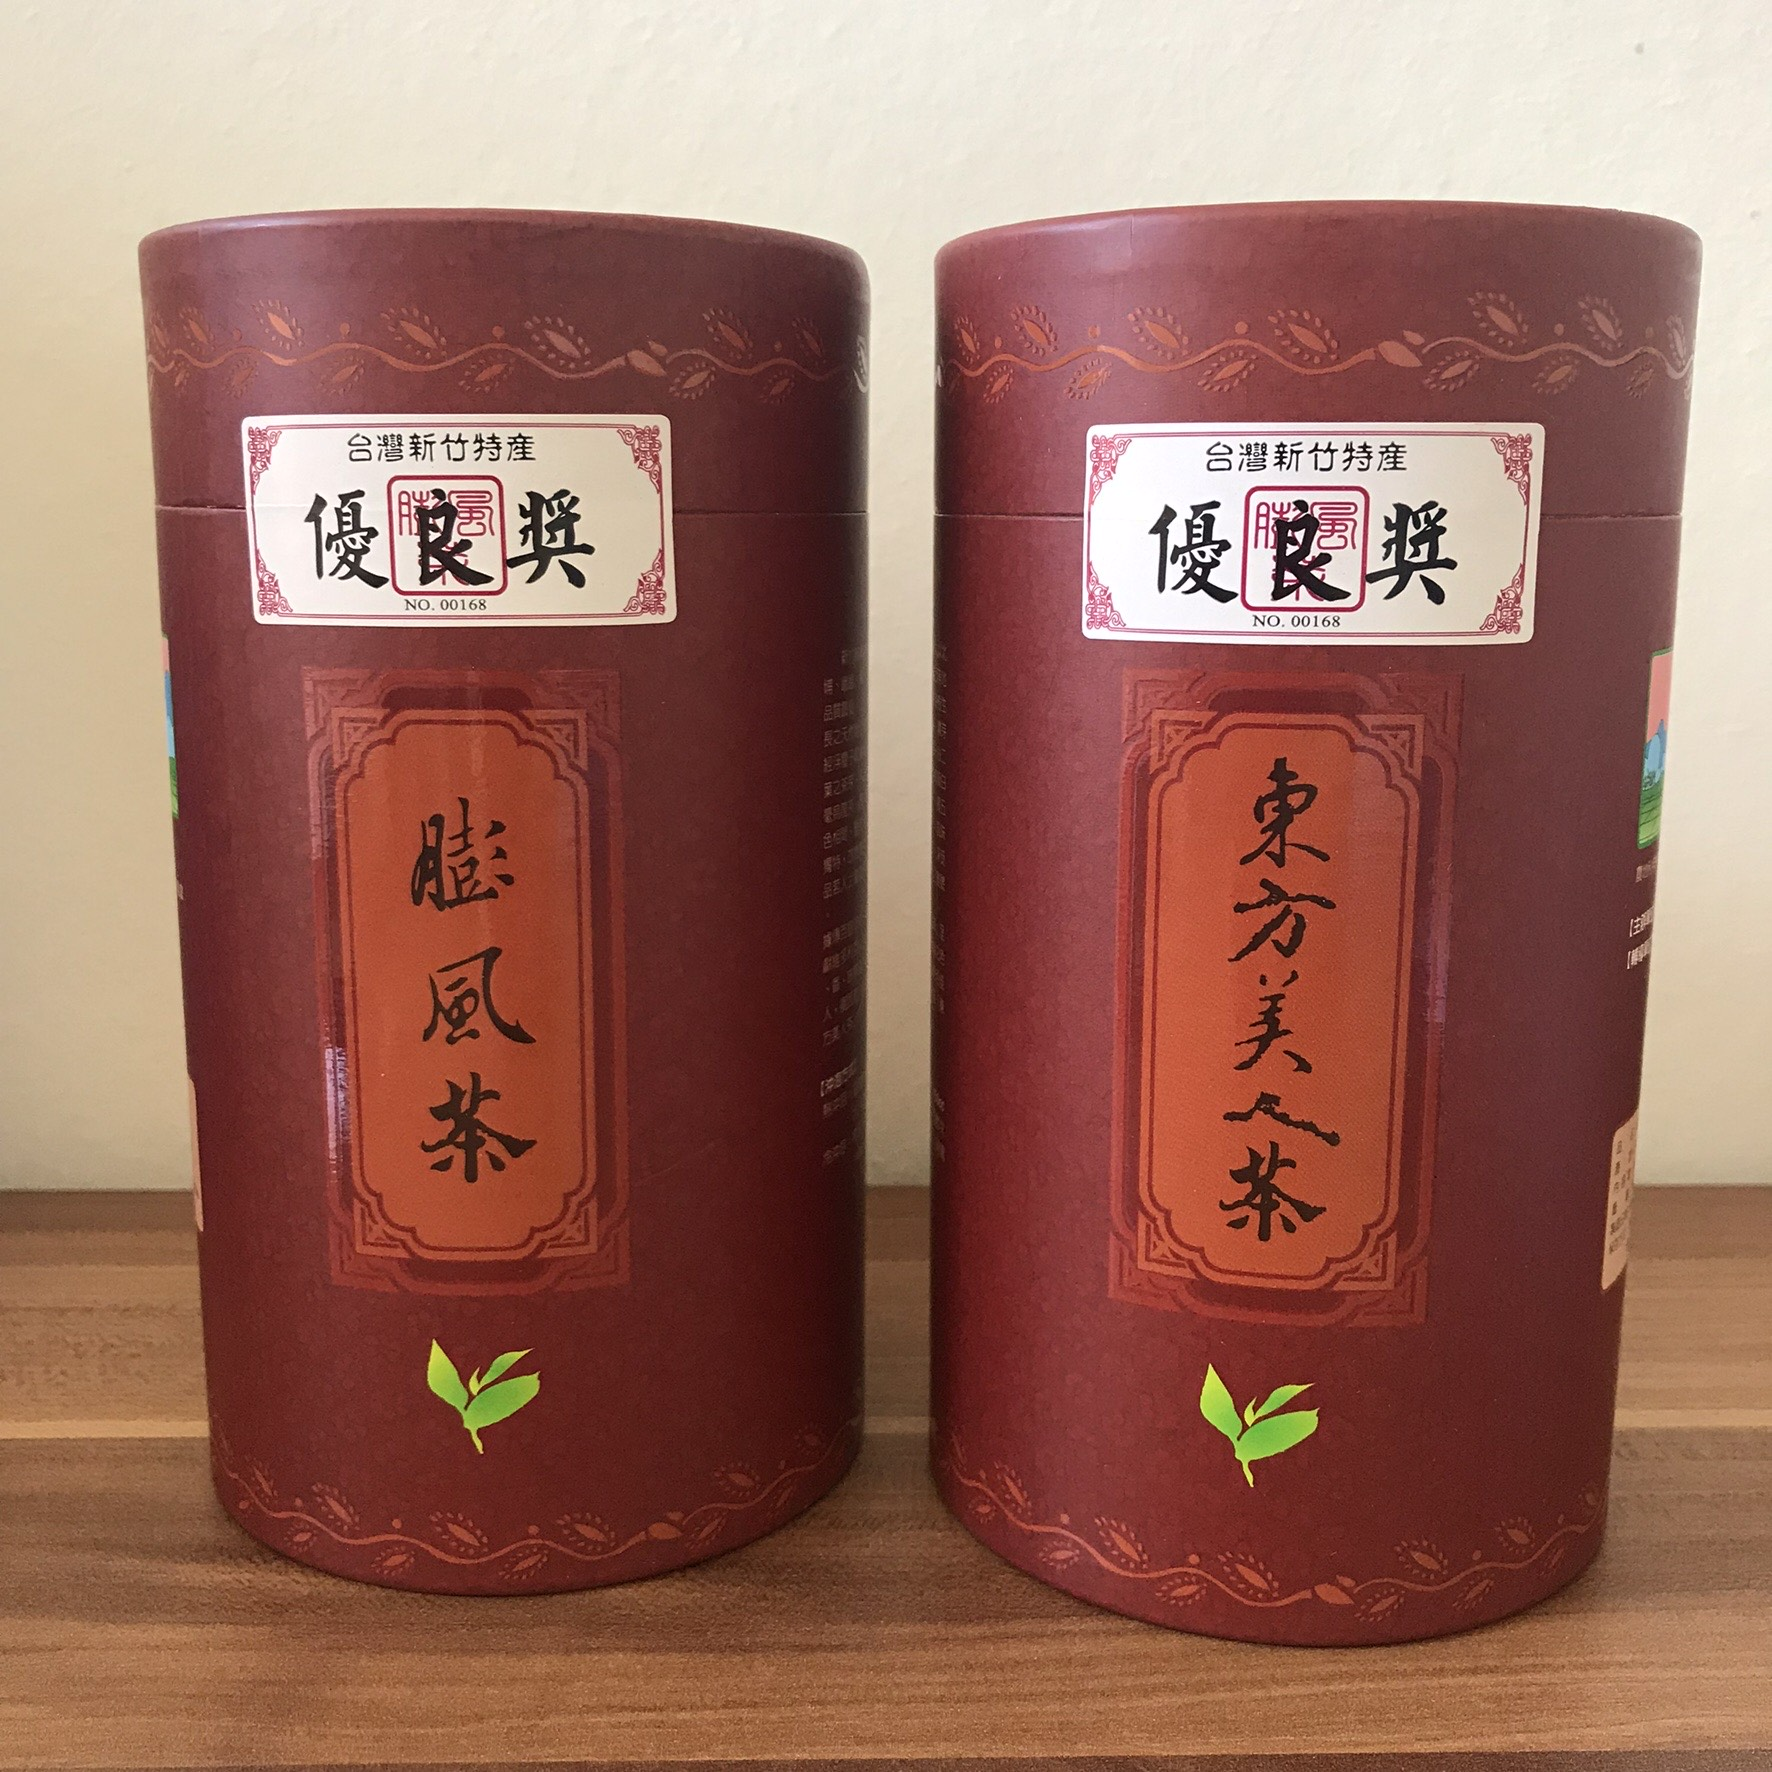 Supreme Oriental Beauty Tea from Taiwan with the original packaging for the authenticity ofaward-winning label